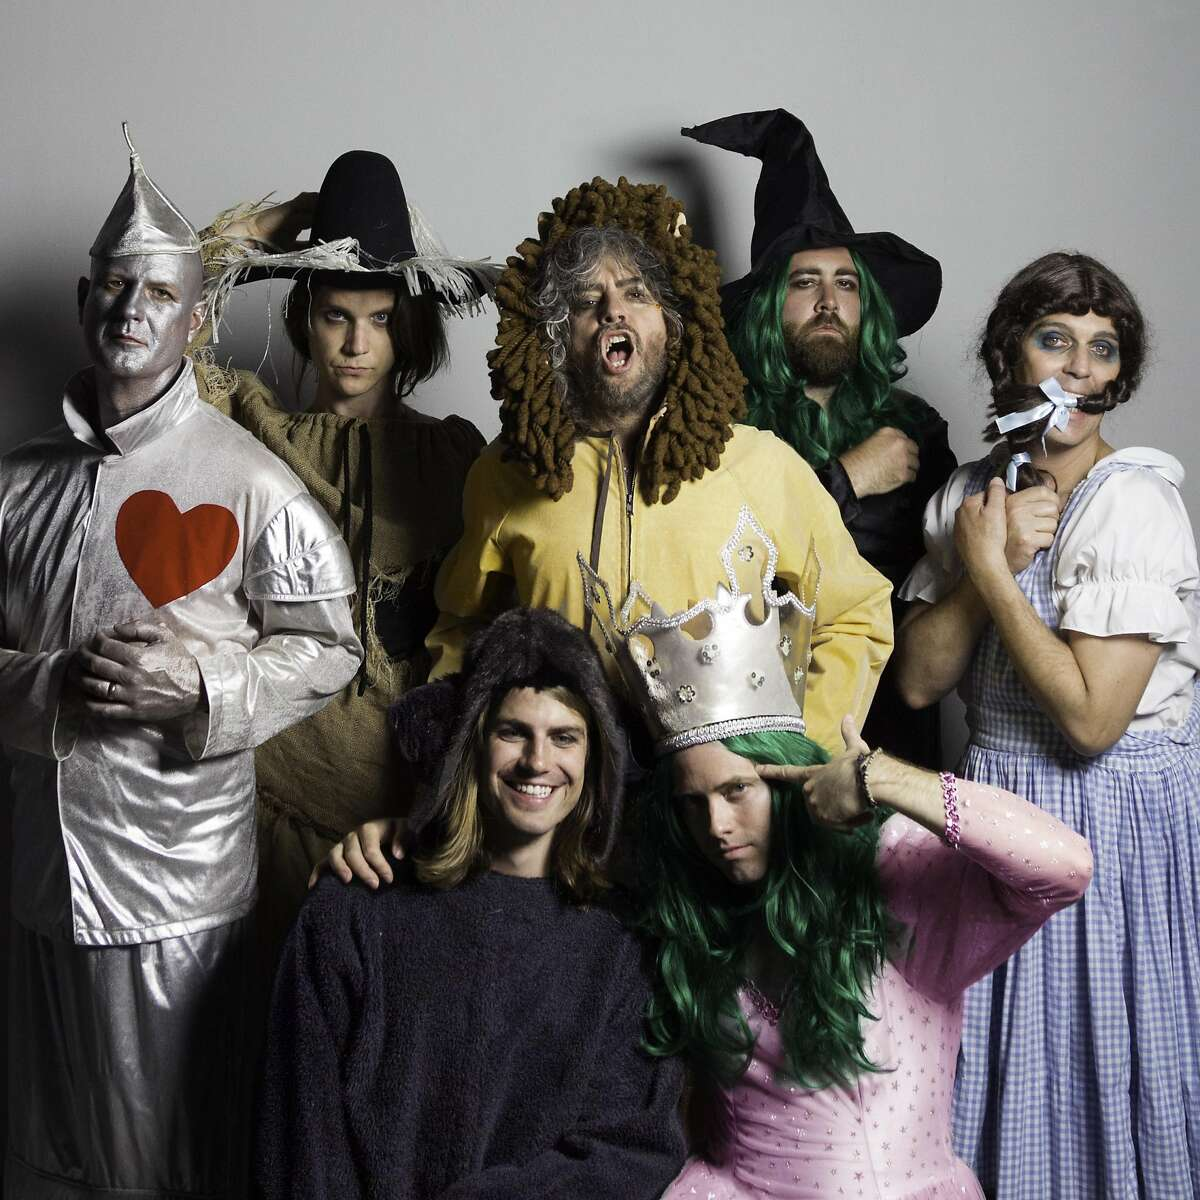 The Flaming Lips are scheduled to perform May 10 at the Fox Theater in Oakland.